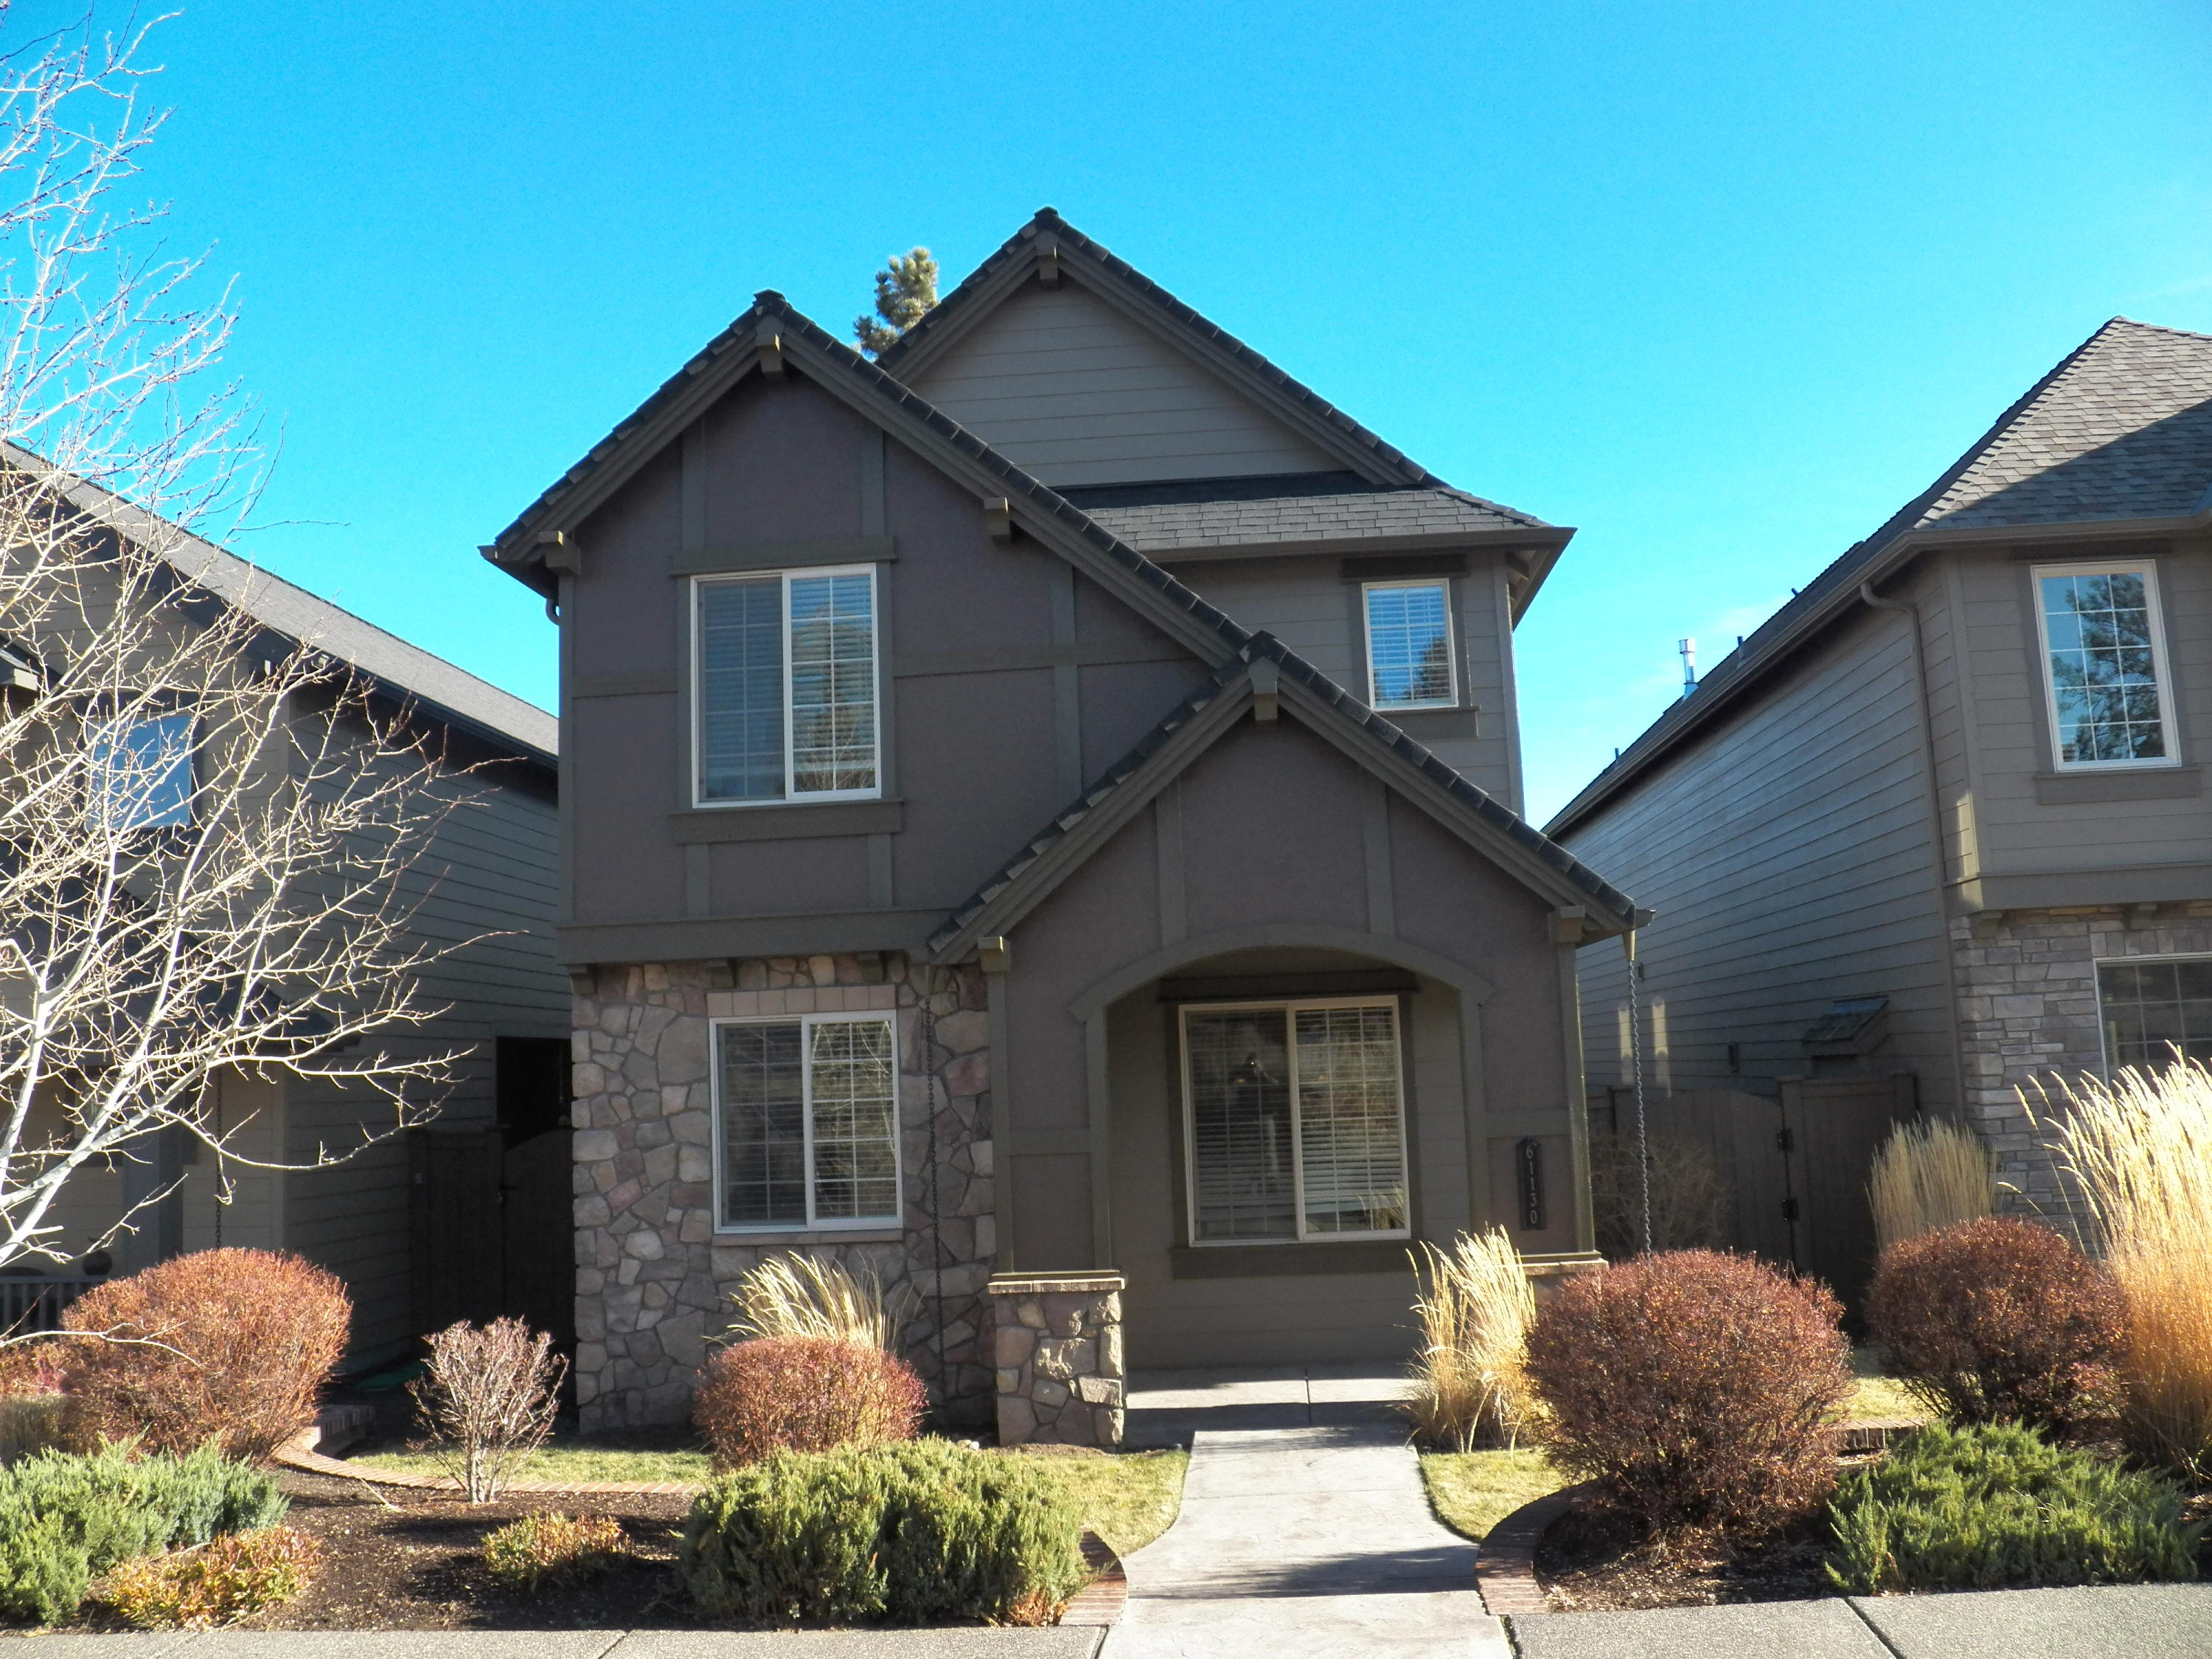 **Open House CANCELLED, accepted offer**. Enjoy this well maintained & roomy 3 bedroom, 2.5 bath home located across the street from the private community pool, clubhouse, sports complex and play structure in The Bridges. The great room features a cozy fireplace and is open to the kitchen & dining. The kitchen has nice tile countertops, pantry, gas range and laminate floors. All three bedrooms and 2 full baths fit comfortably upstairs to complete this floor plan. The spacious master suite includes dual sinks & a walk in closet. You'll be comfortable year round w/ a gas forced air furnaces & A/C. On the exterior this home features a dramatic two-story courtyard, adding outdoor living space. Near schools & shopping yet tucked in a private community. Don't miss this wonderful home!